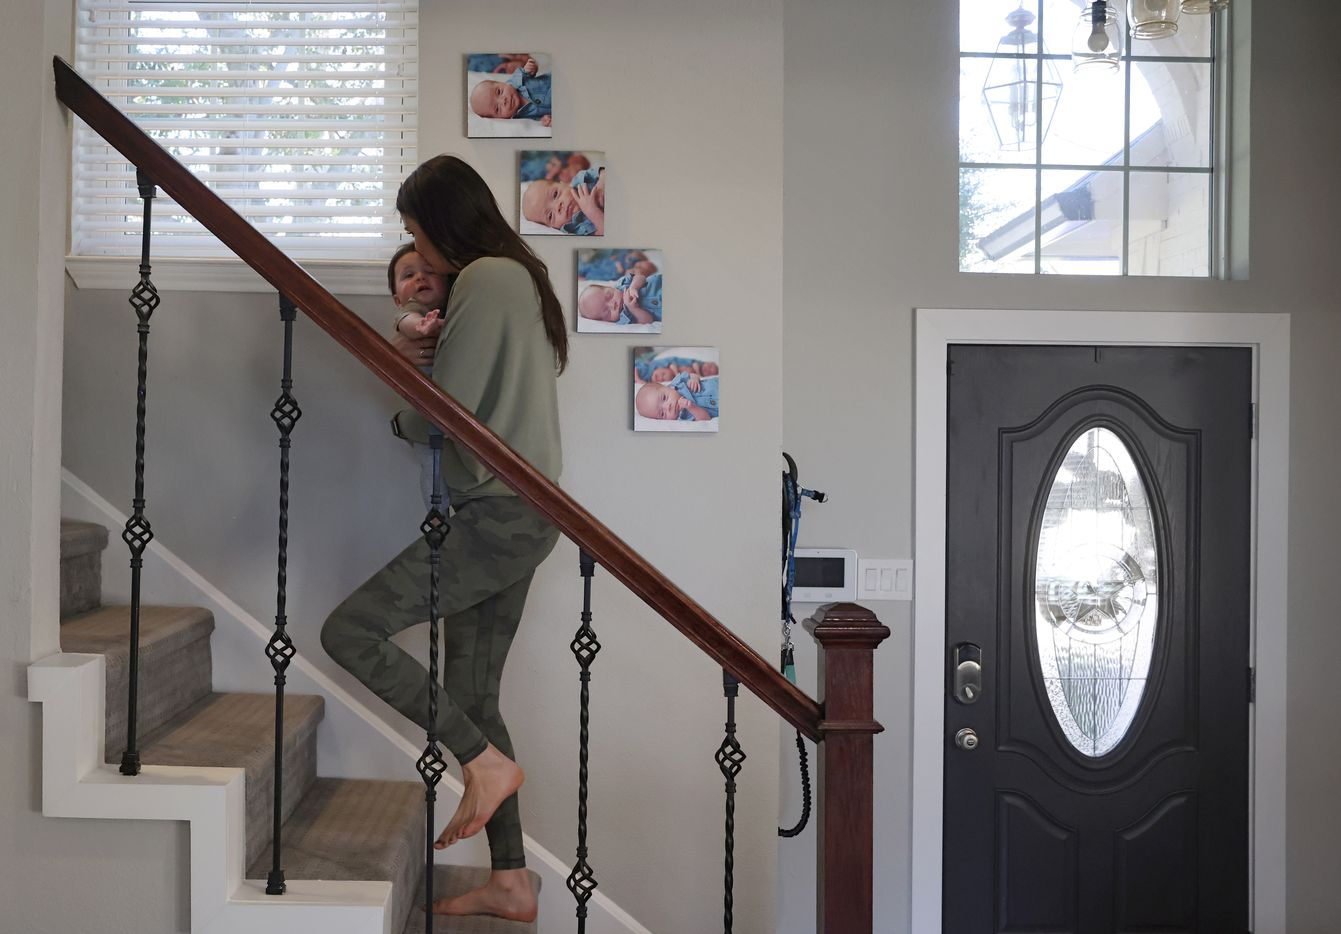 Jenny Marr carries Hardy Marr to his room for a nap at their home on Friday, January 15, 2021 in Grapevine, Texas.